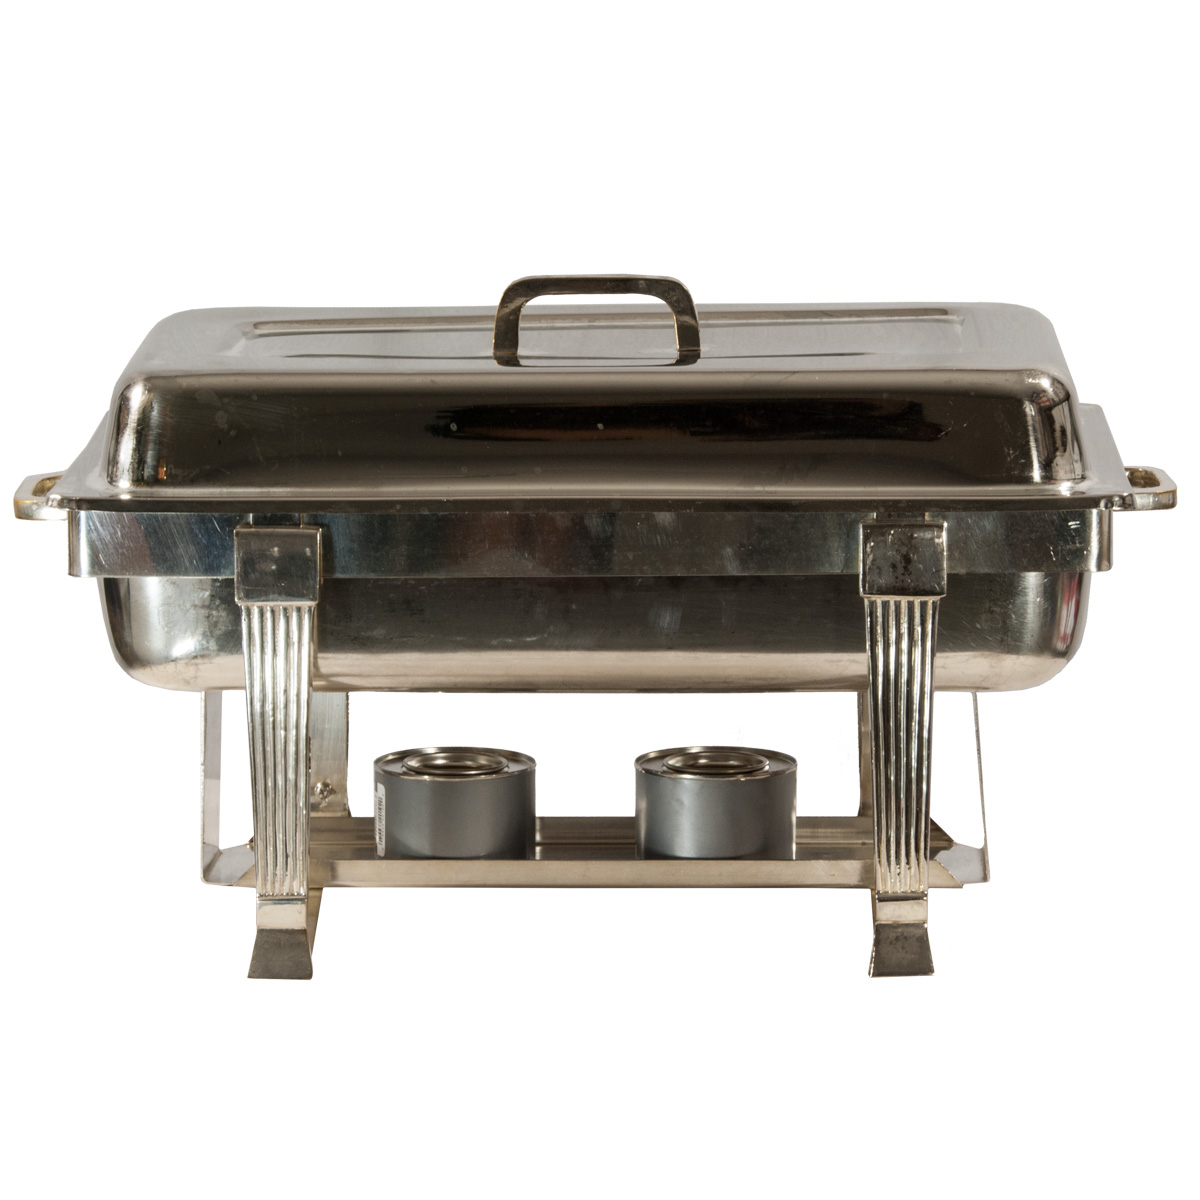 8 quart rectangular silverplate chafer